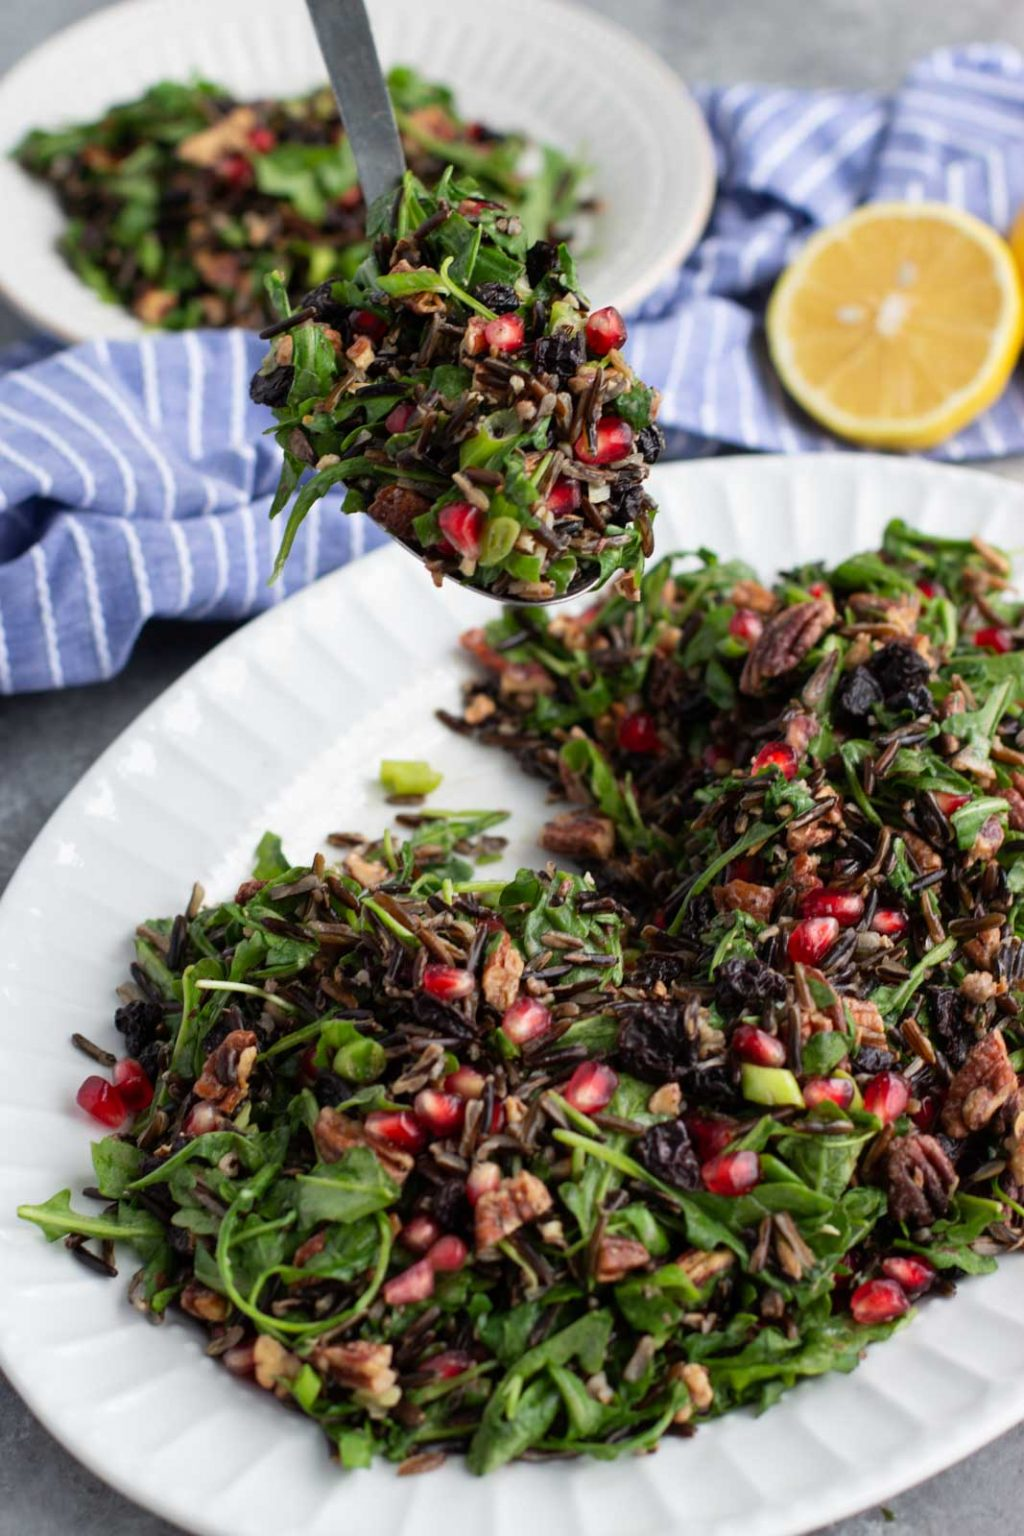 A spoon scooping arugula wild rice Christmas salad from a large white platter on a gray background.